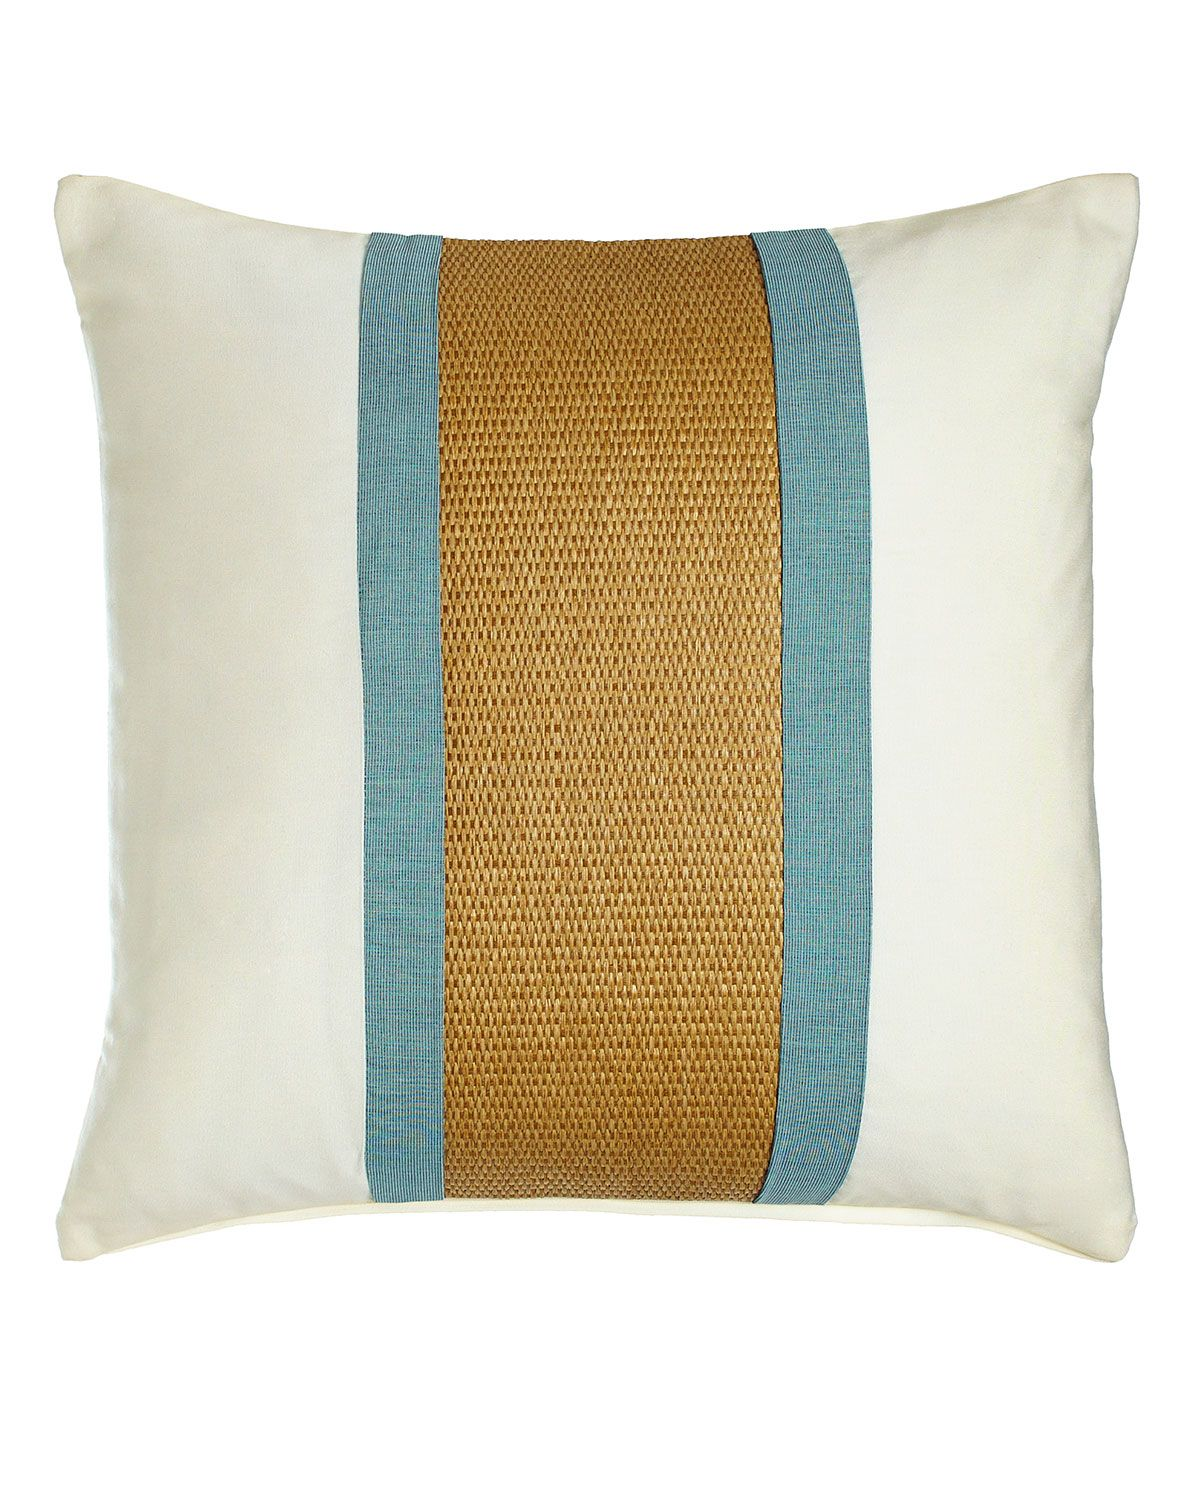 Celadon Broad Stripe Outdoor Pillow Multi Colors Neiman Marcus